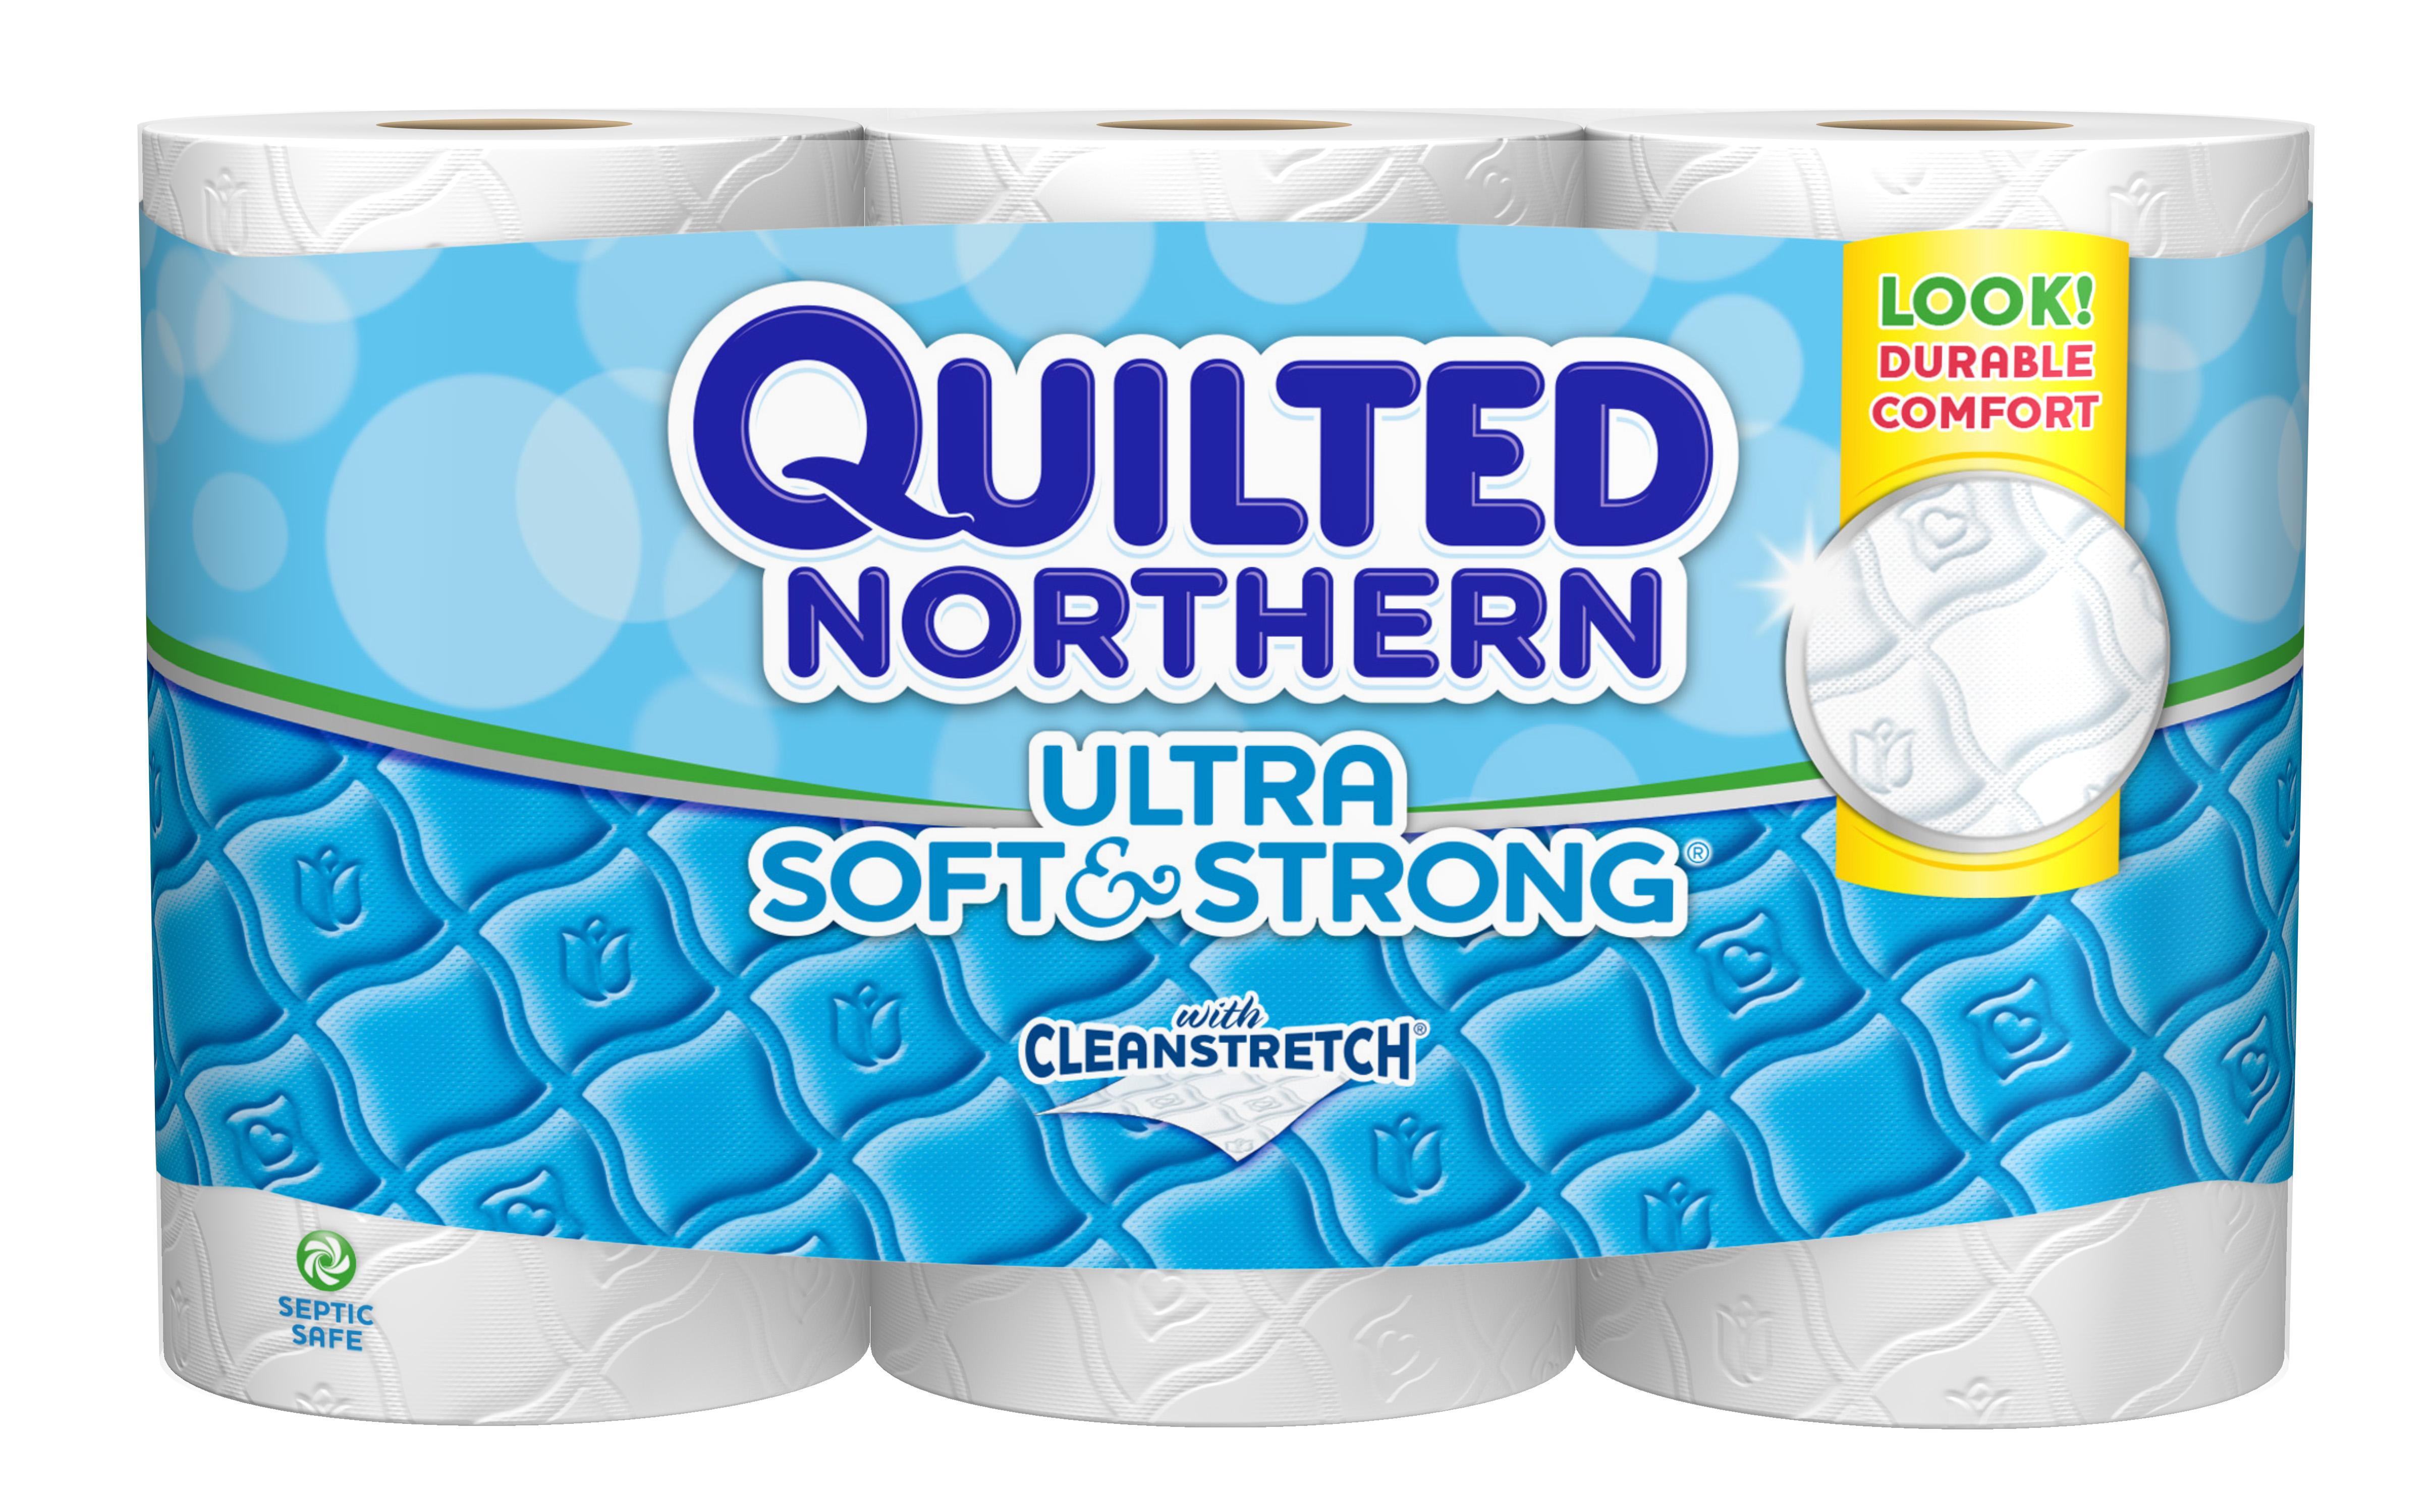 Quilted Northern Toilet Paper Launches Memorable Spots